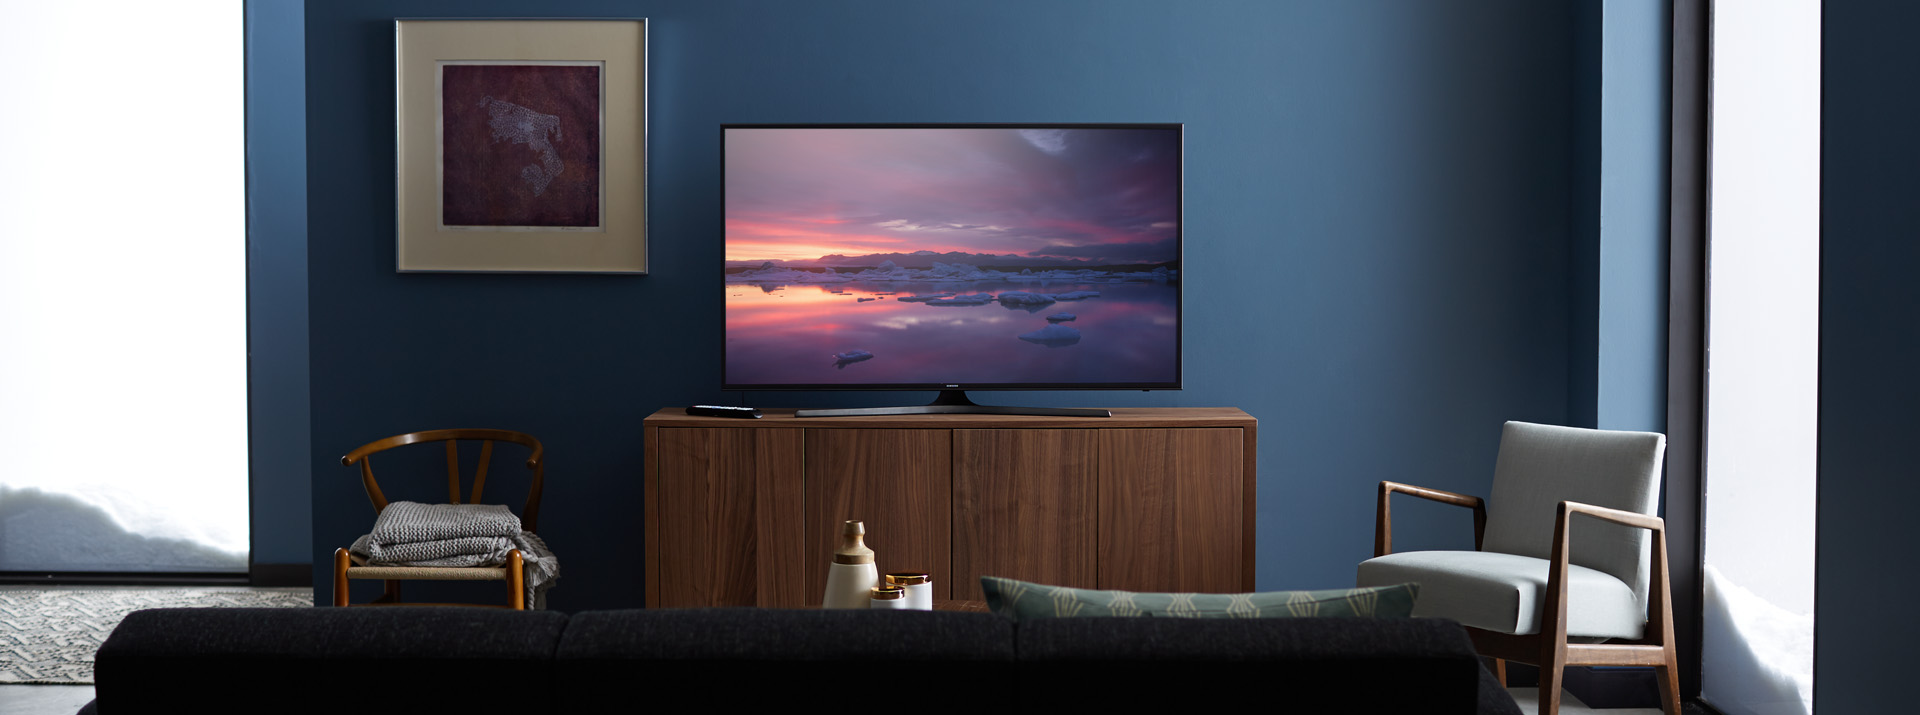 Samsung Curved Smart TV